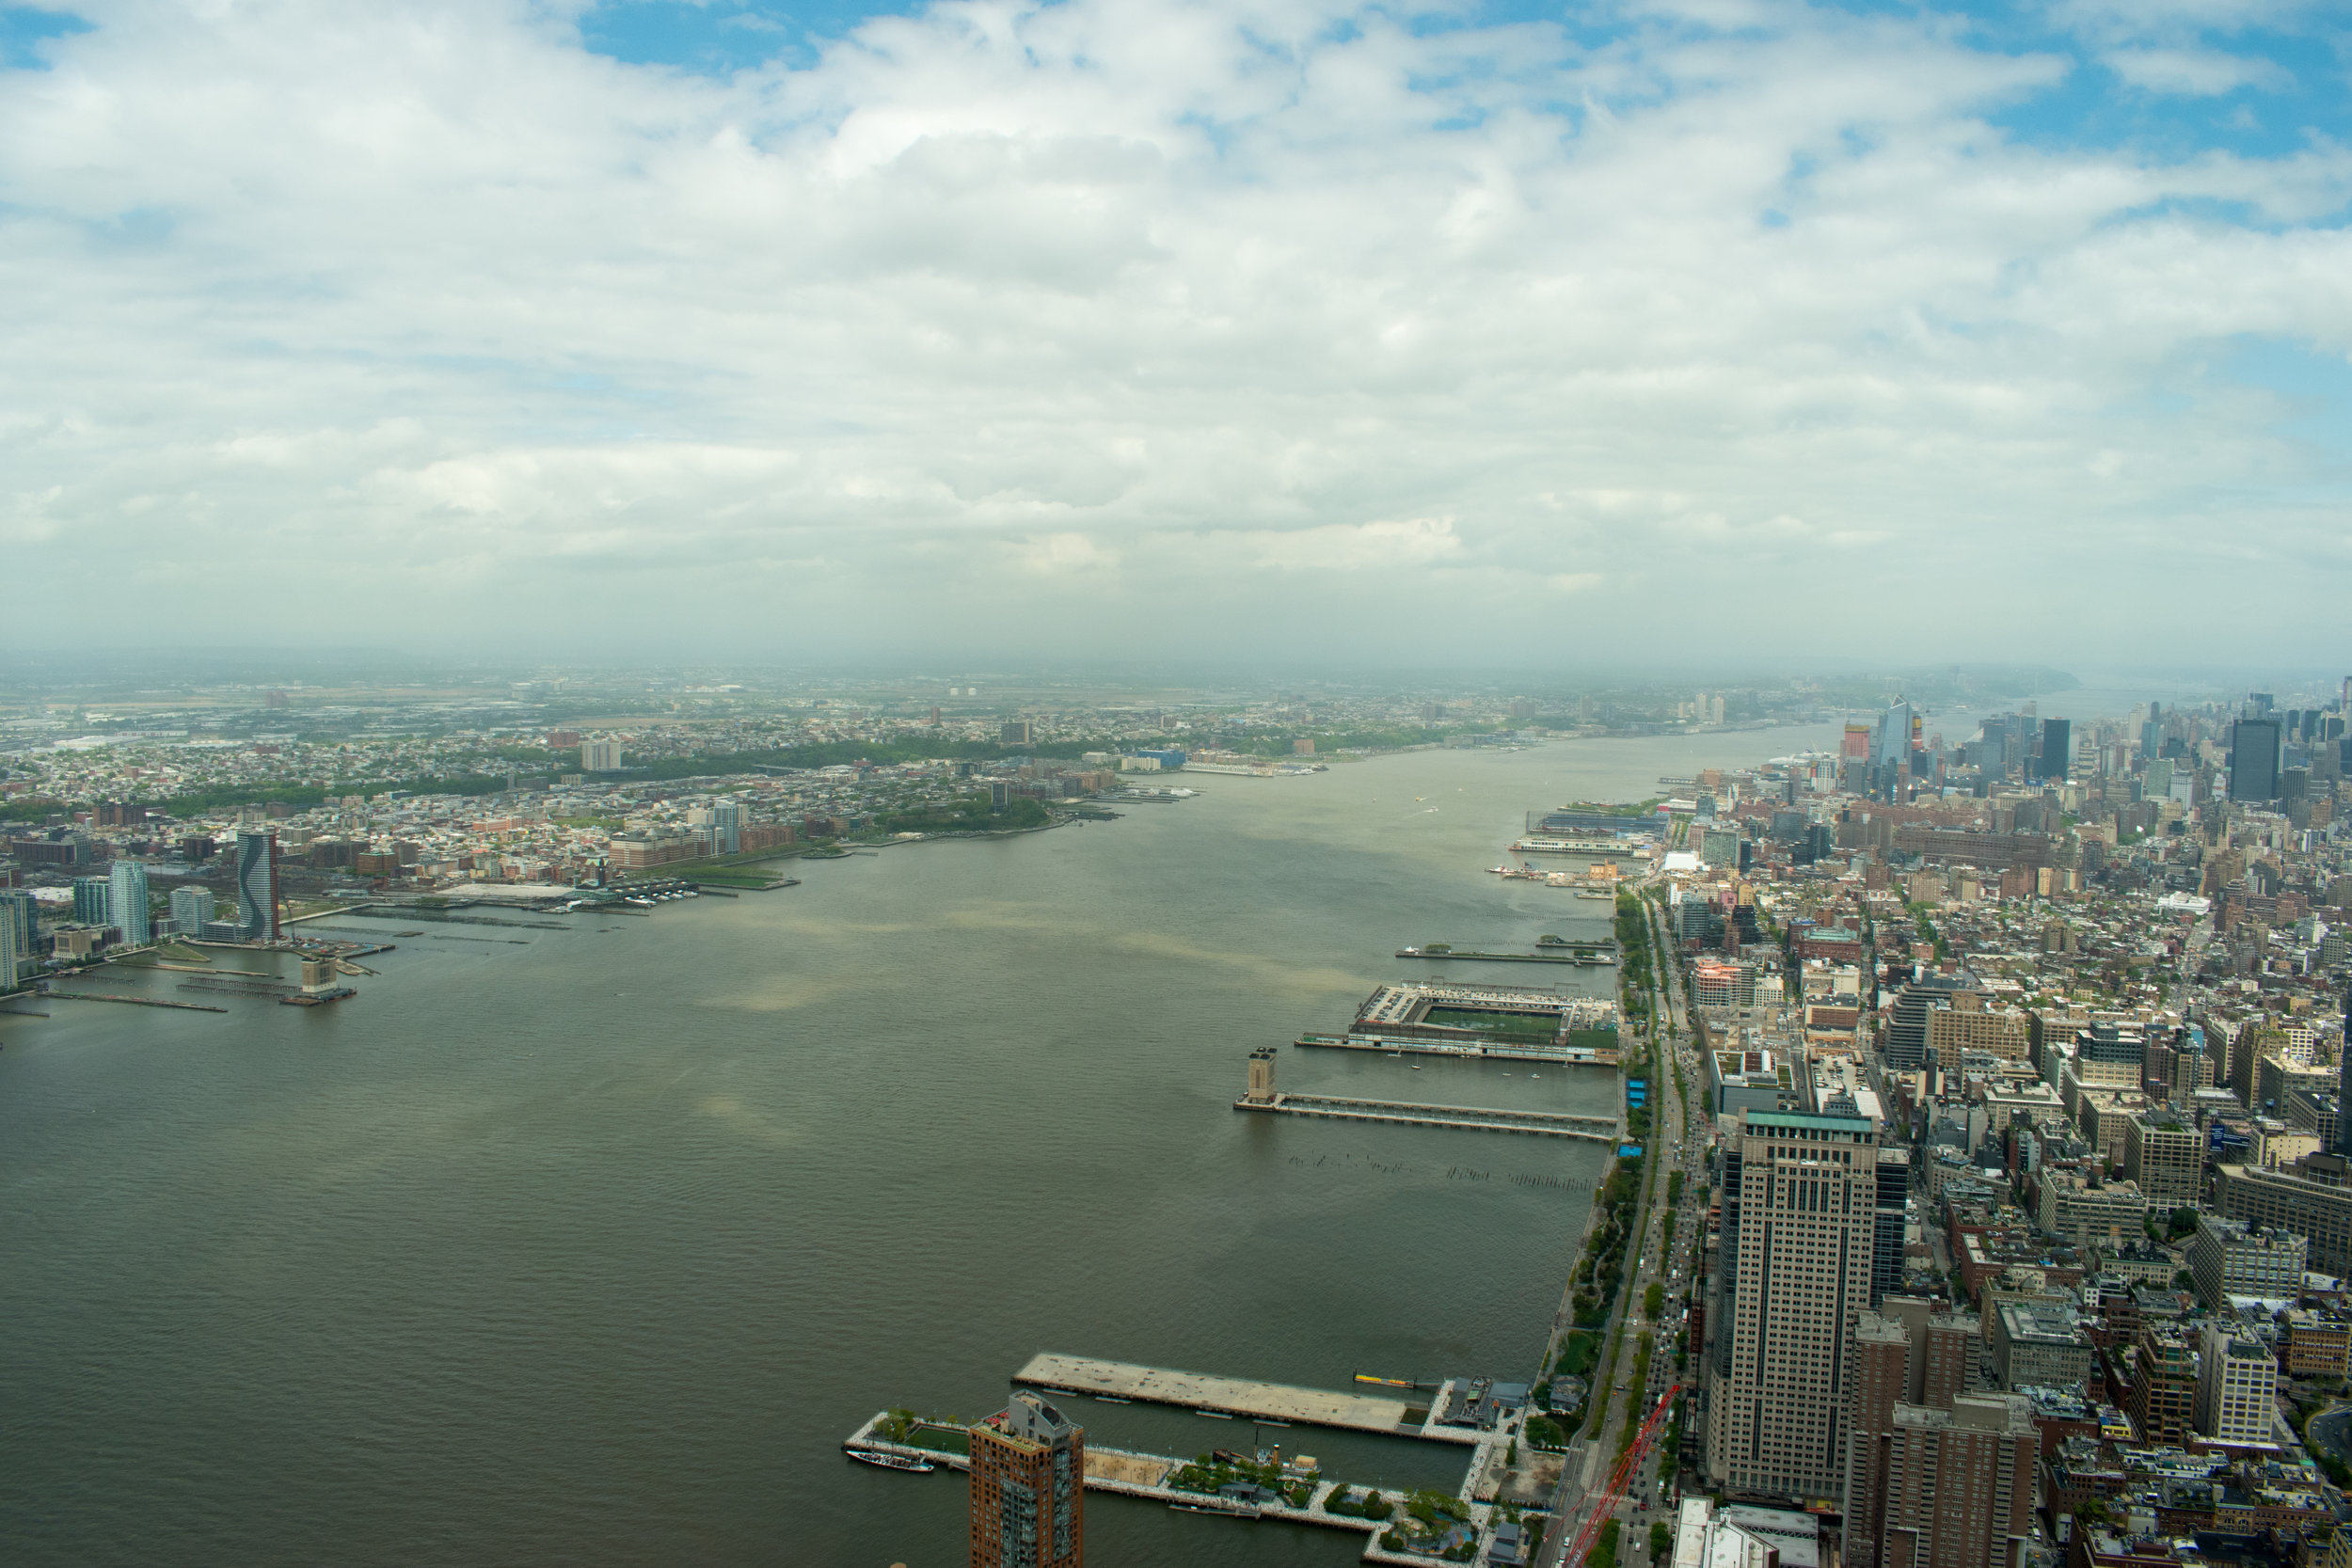 The View Over The Hudson River From One World Trade Center in New York